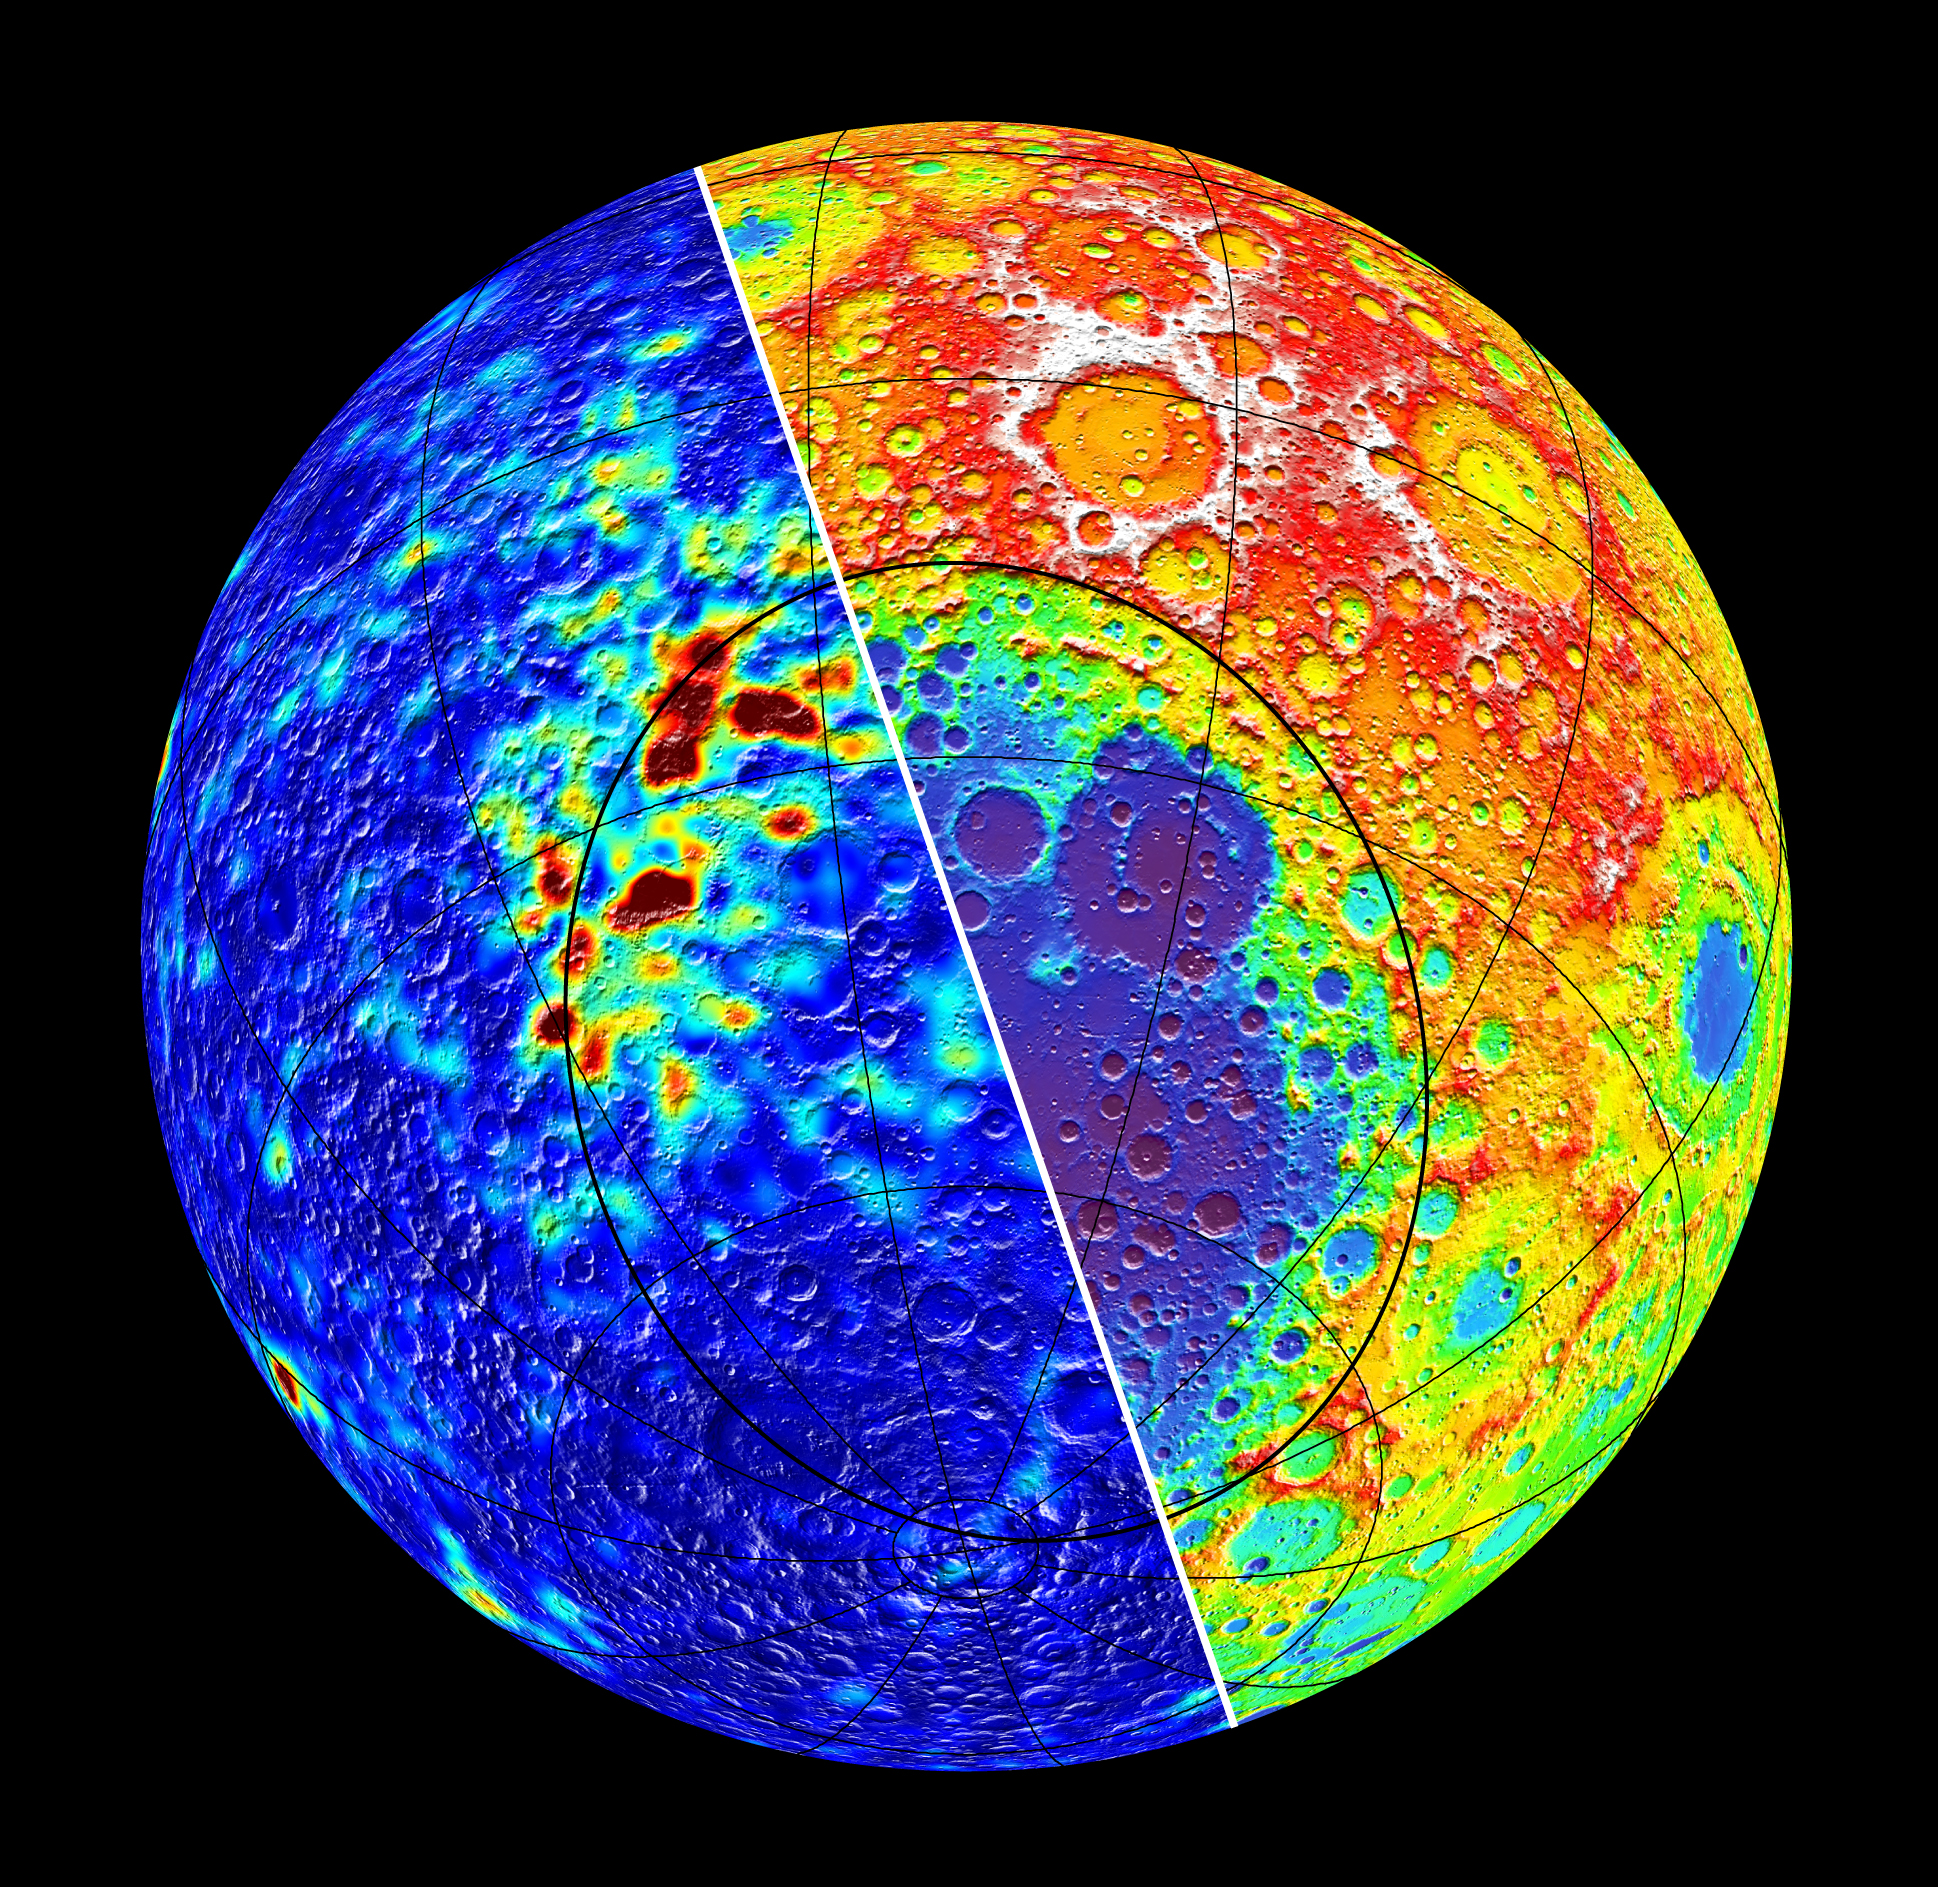 Huge Asteroid Impact Linked to Moon's Magnetic Hotspots